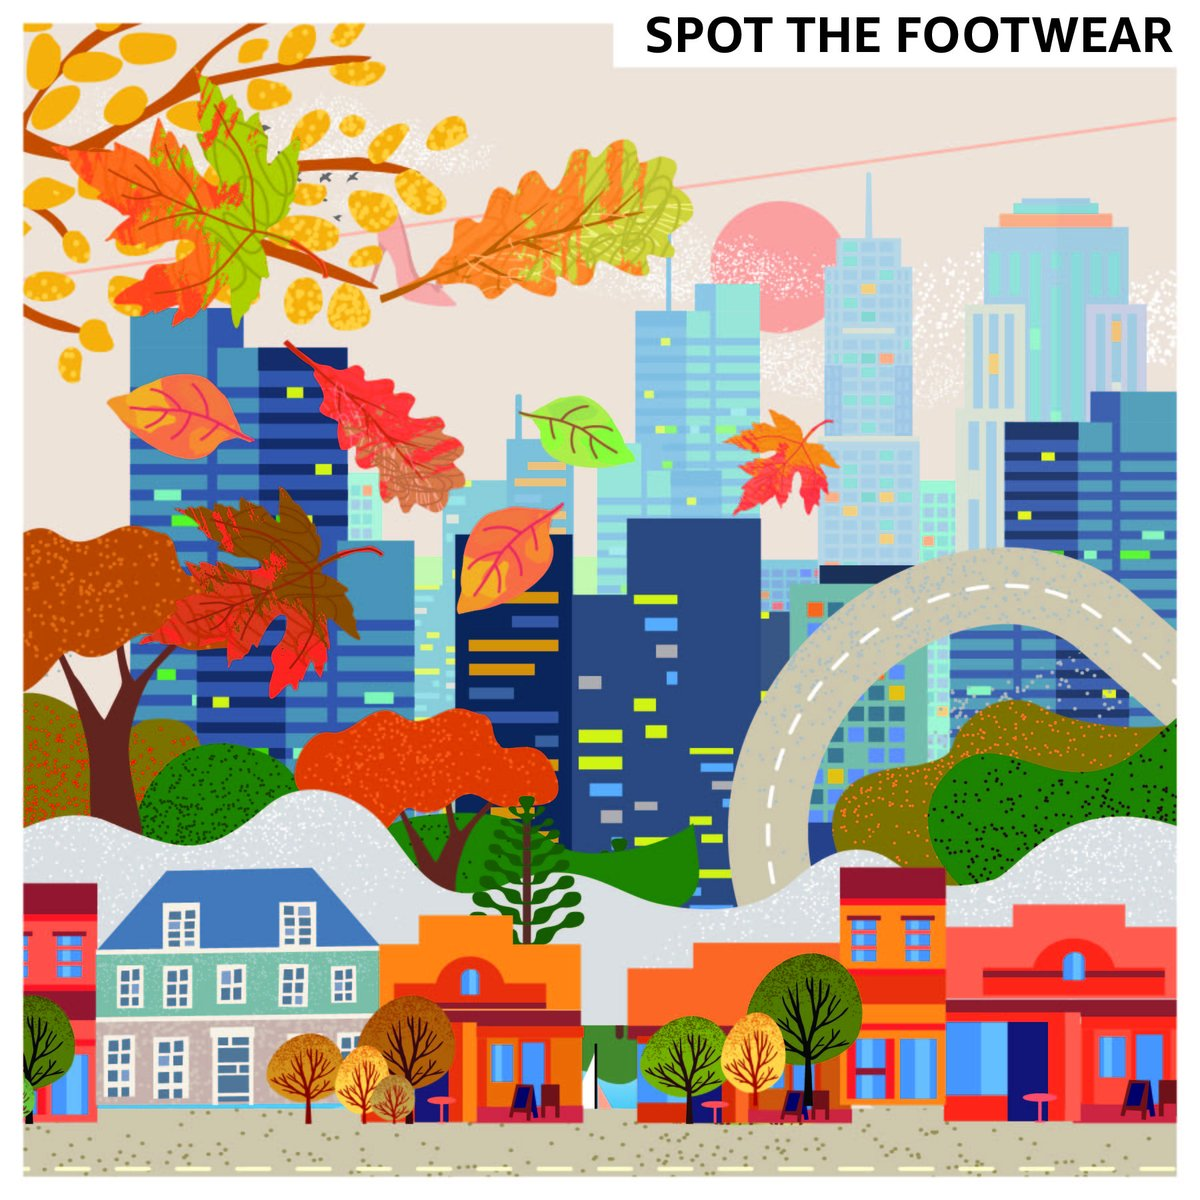 Fashion is everywhere! Can you spot the footwear  that's hidden in this image? Let us know in the comments below!   #stayinisthenewgoingout #AmazonFashion #TogetherForIndia #AmazonLoves #HarPalFashionable #StayHome #StaySafe #StayStrongpic.twitter.com/12gOSlWfSI